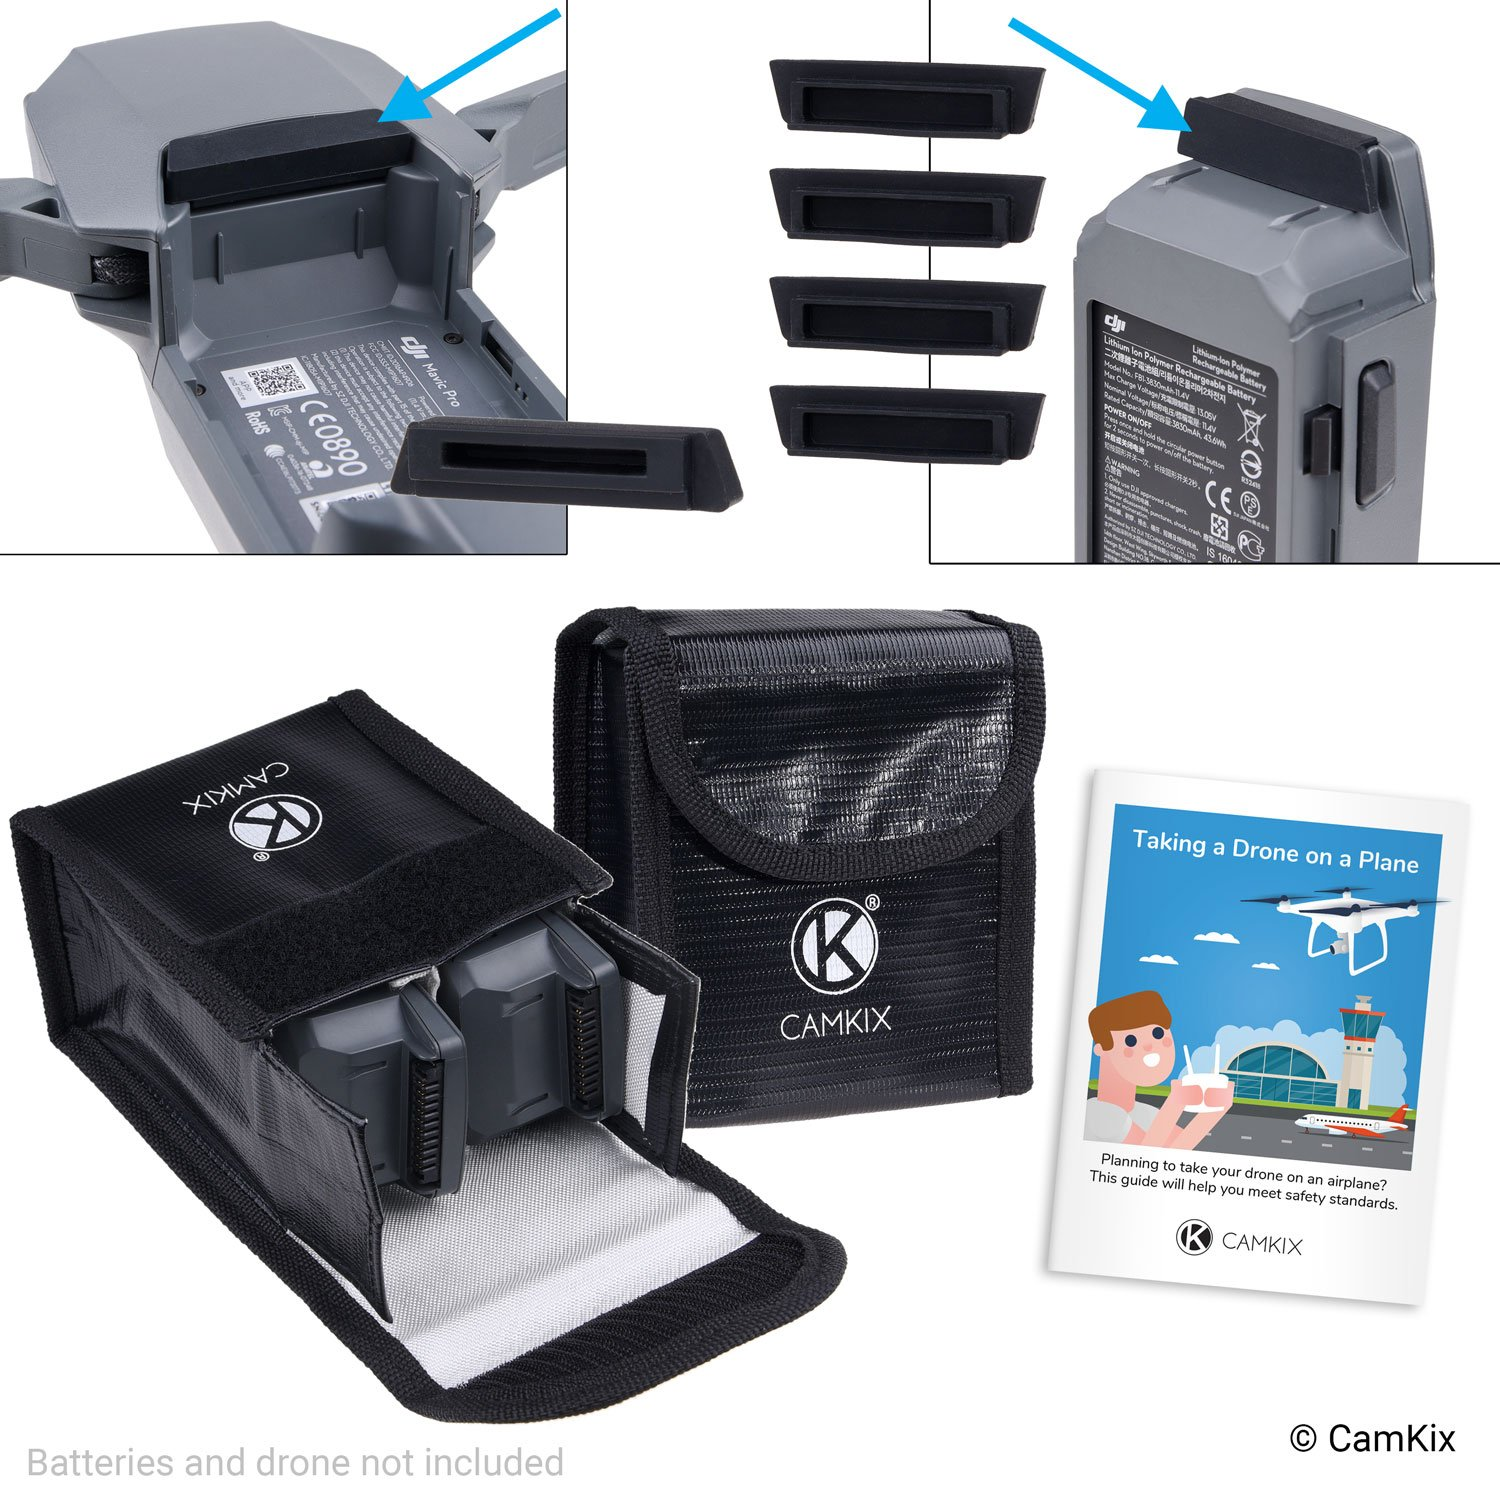 Charge Port Cover and Travel Instructions 4x Battery Port Cover Includes: 2x LiPo Safety Bag CamKix Travel Safety Pack compatible with DJI Mavic Pro//Platinum For 4 Batteries